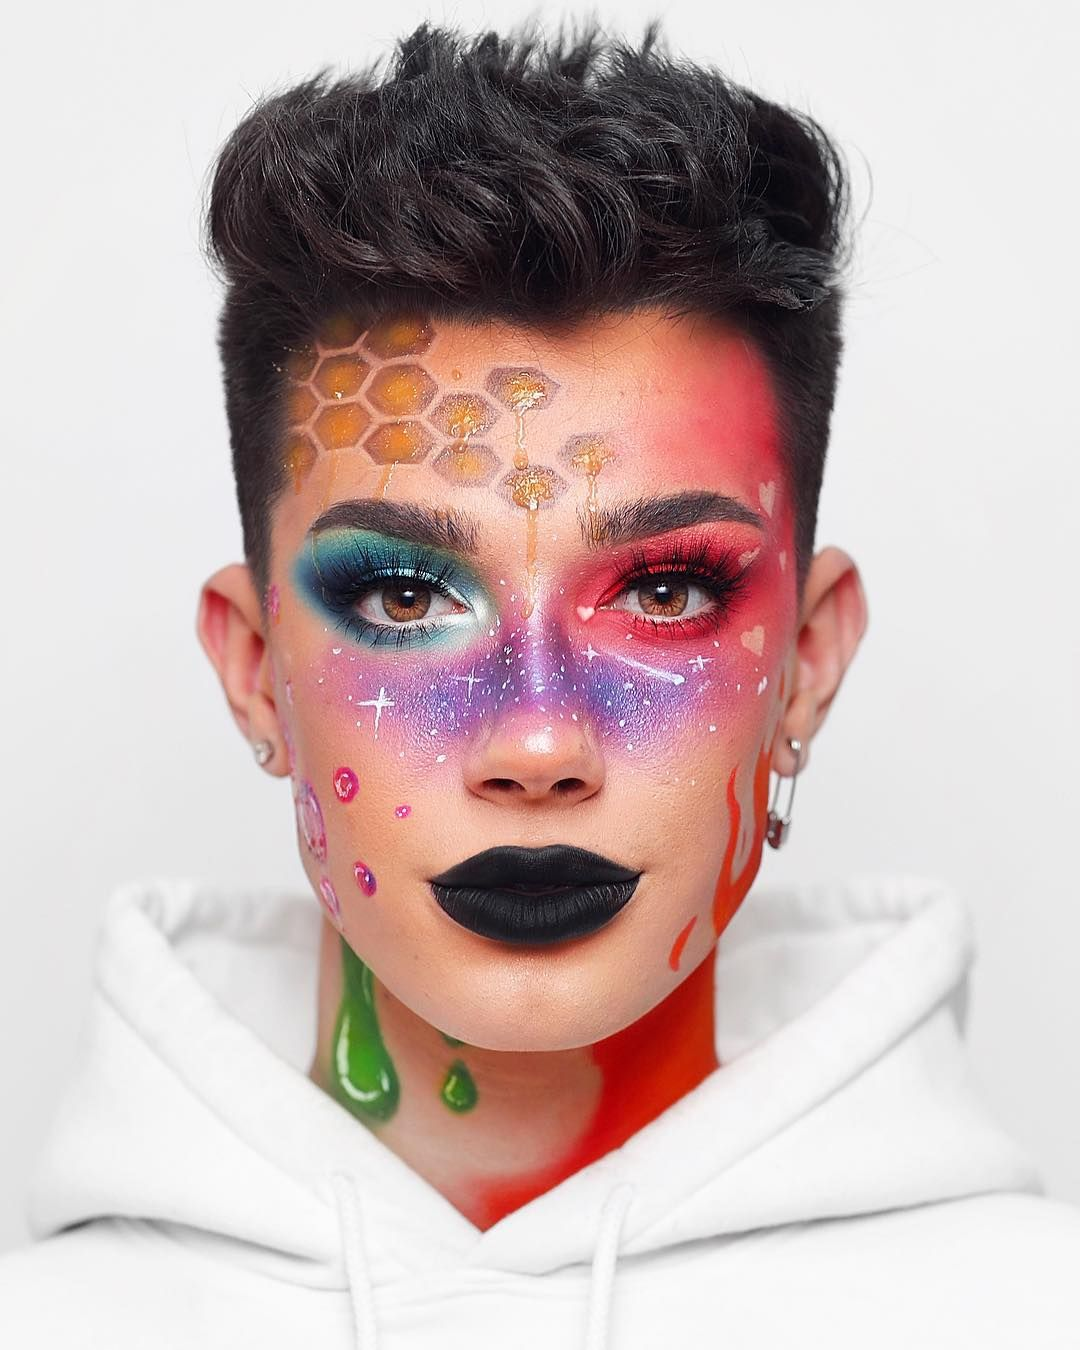 James Charles on Instagram \u201c10 LOOKS FOR 10M SUBSCRIBERS